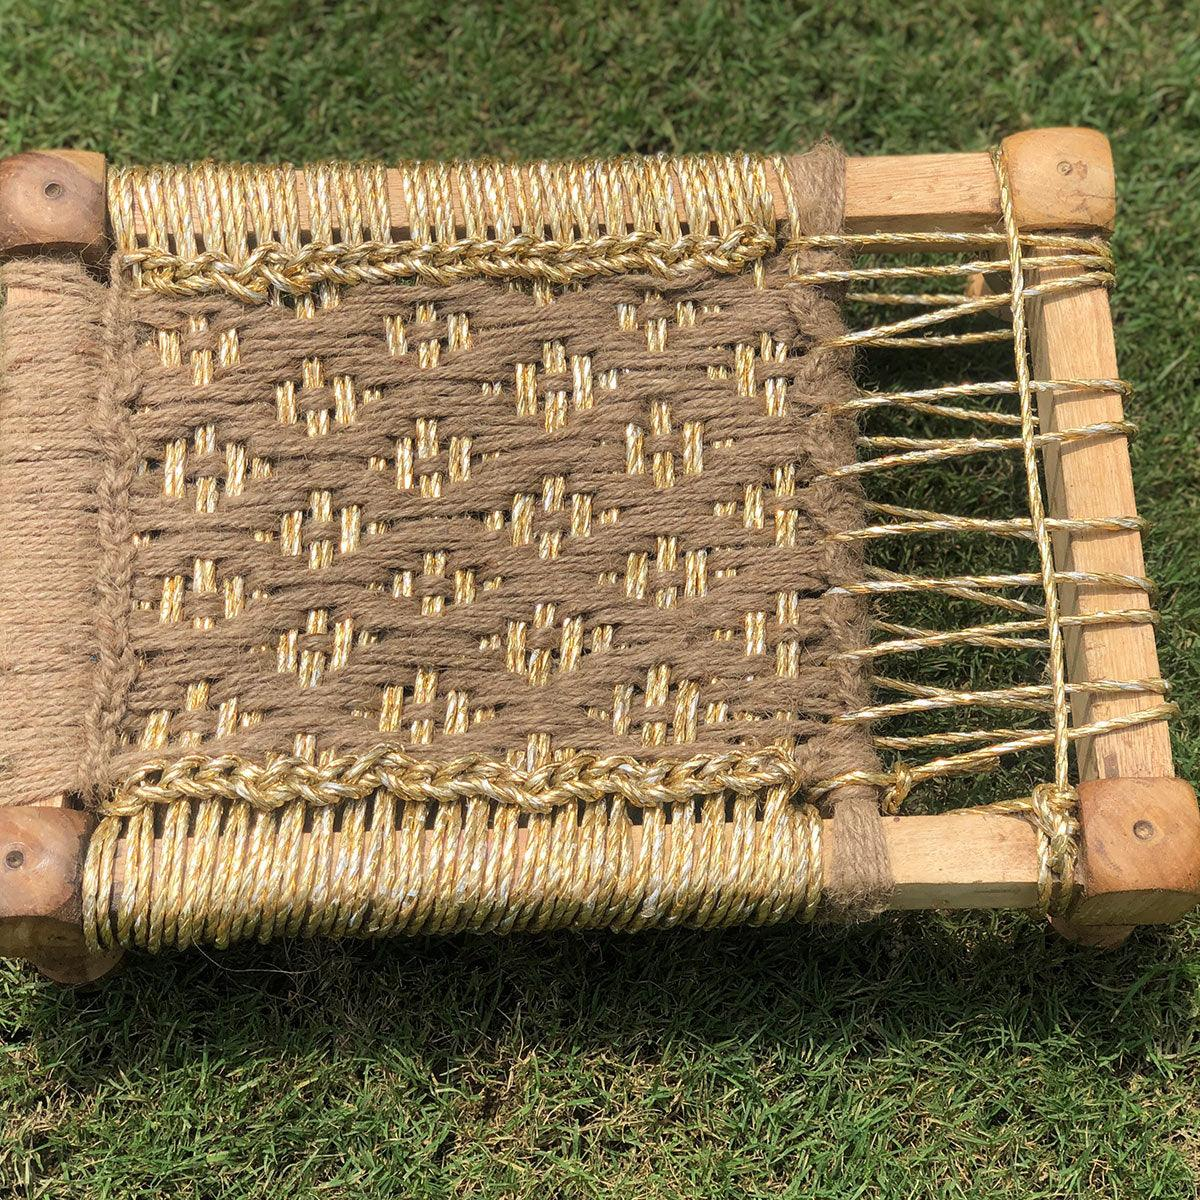 Golden Handwoven Jute & Plastic Waste Mini Charpai